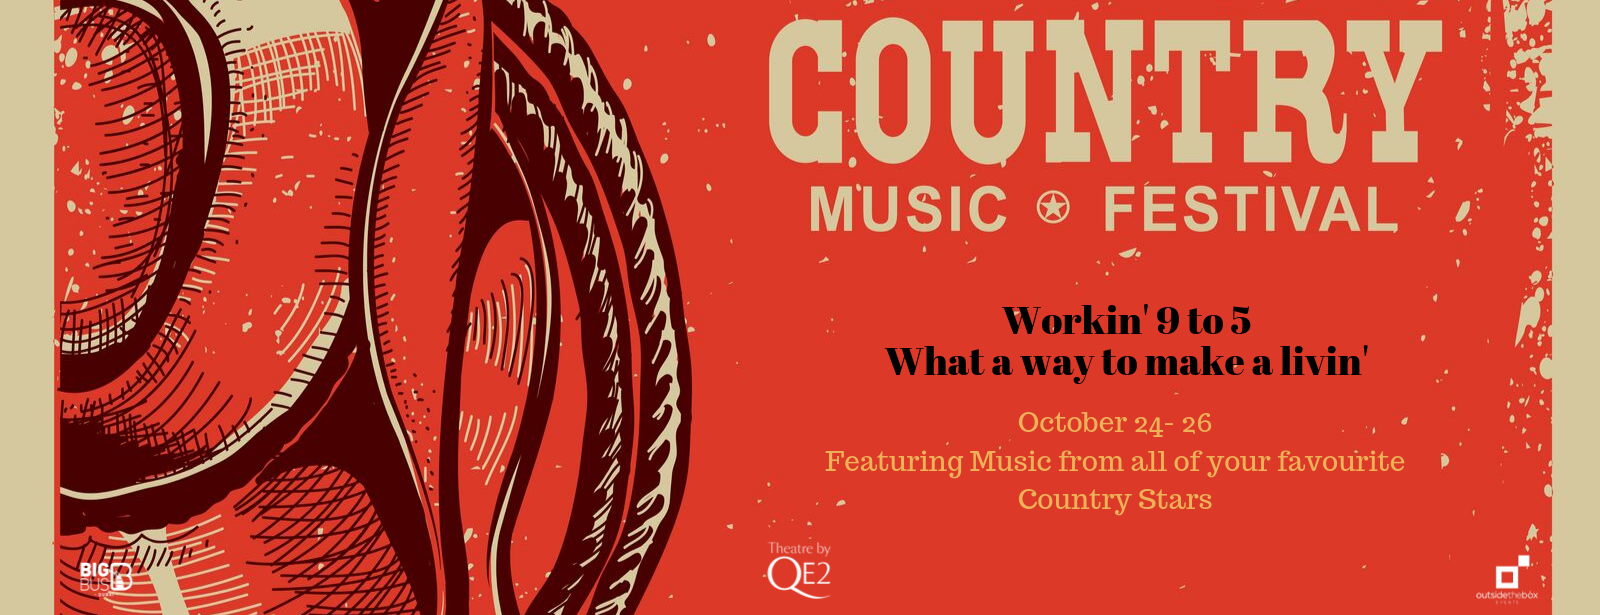 Country Music Festival Dubai 2019 on Oct 24th – 26th at Queen Elizabeth 2